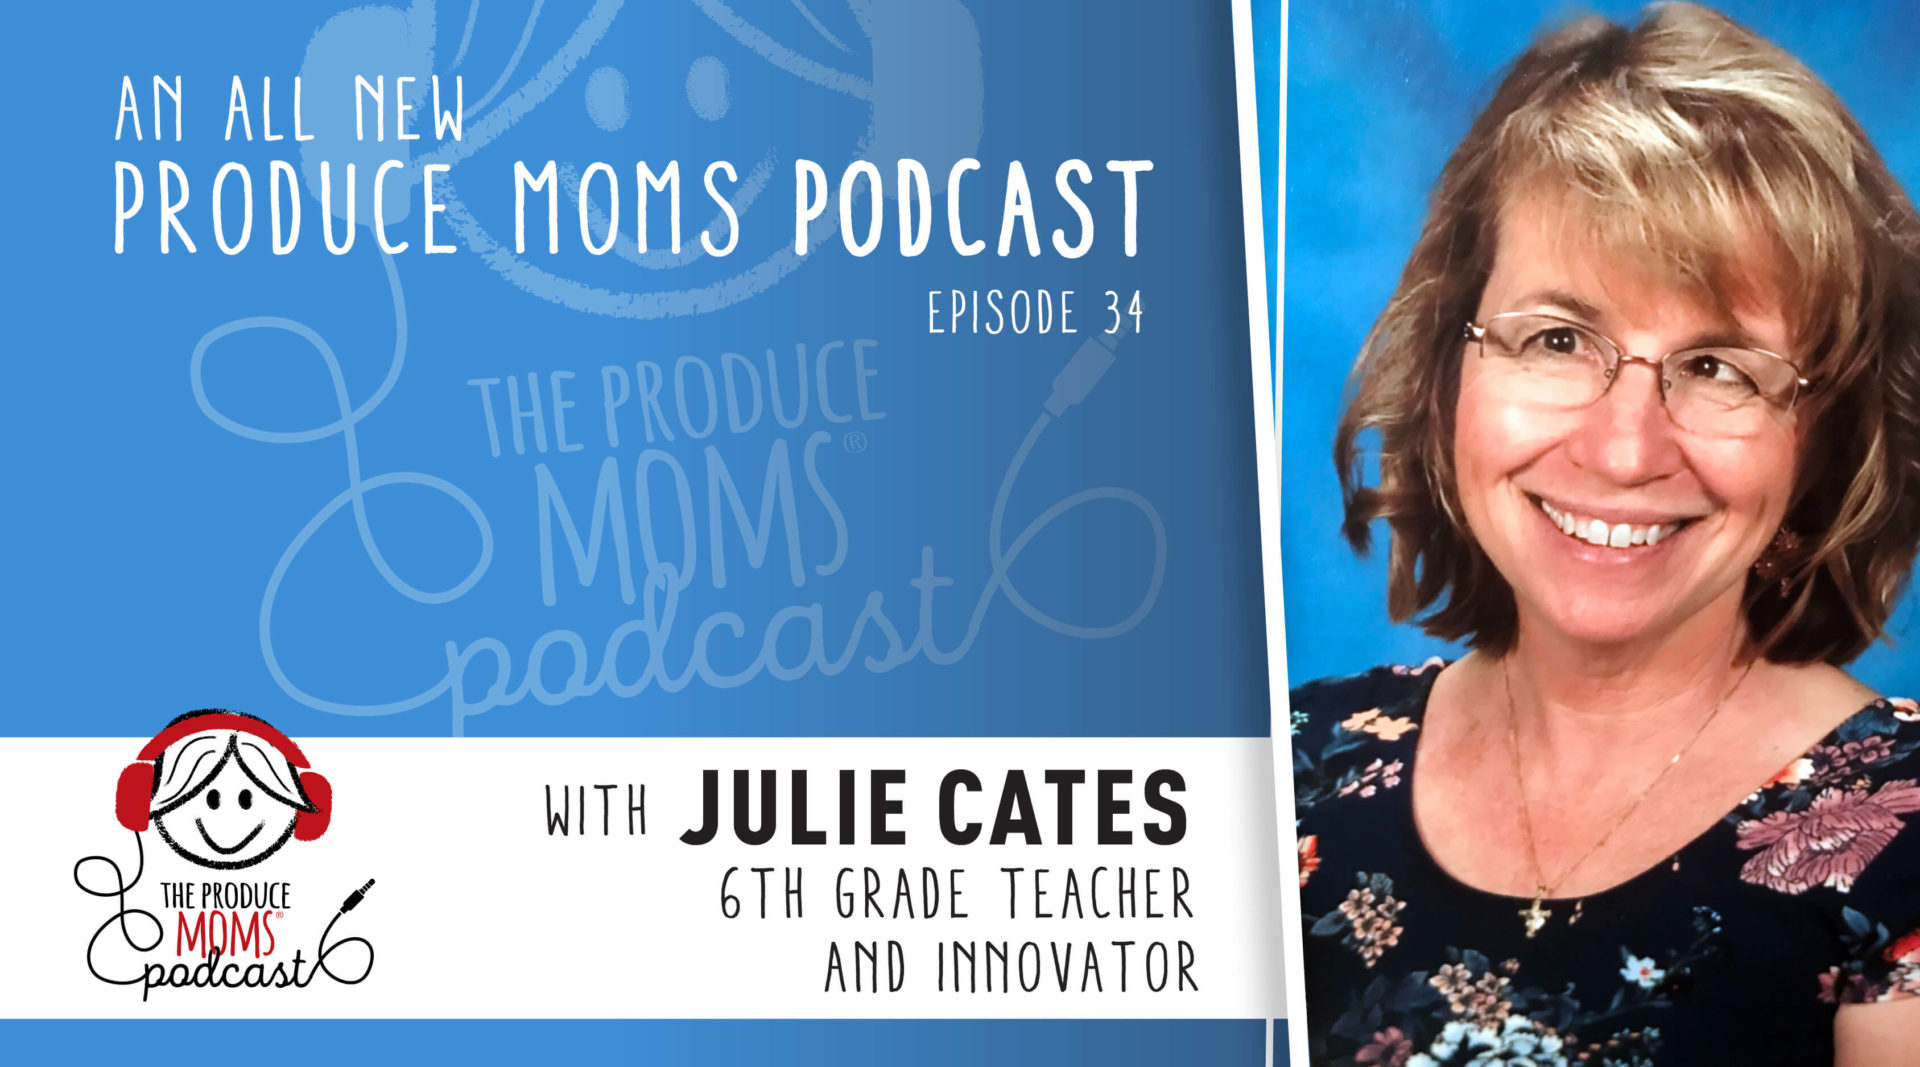 Episode 34: Getting Produce into the Classroom with Teacher and Innovator, Julie Cates